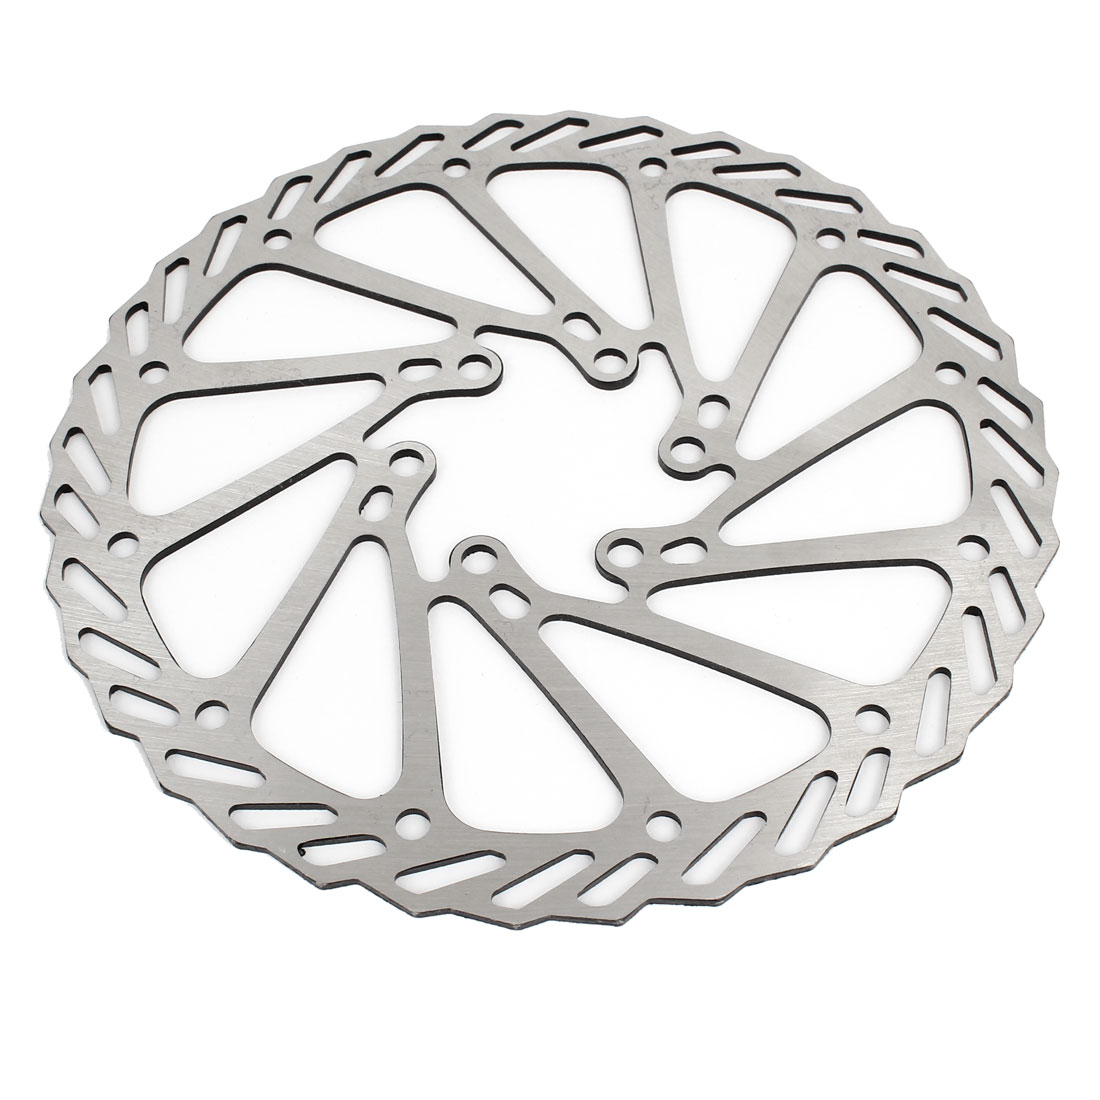 Bicycle Silver Tone Decorative 160mm Diameter MTB Disc Brake Rotor